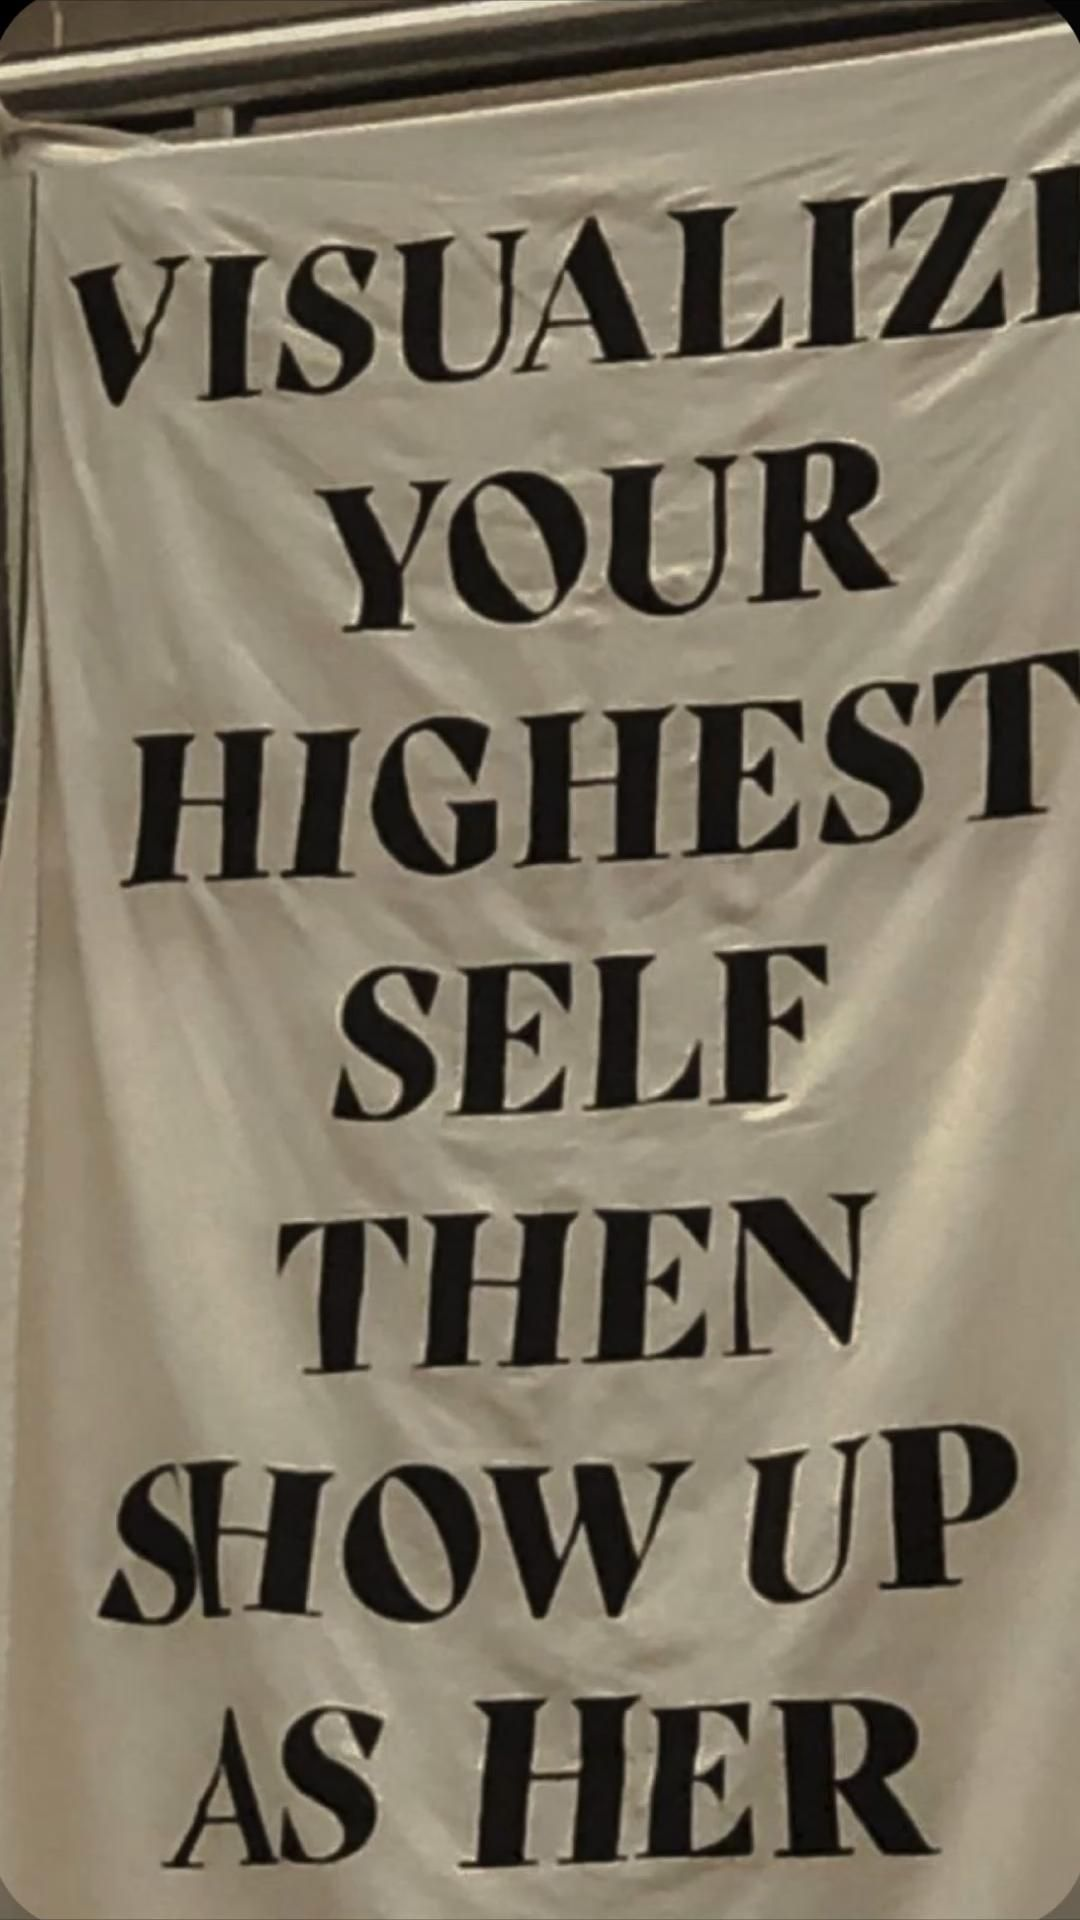 self-growth quotes